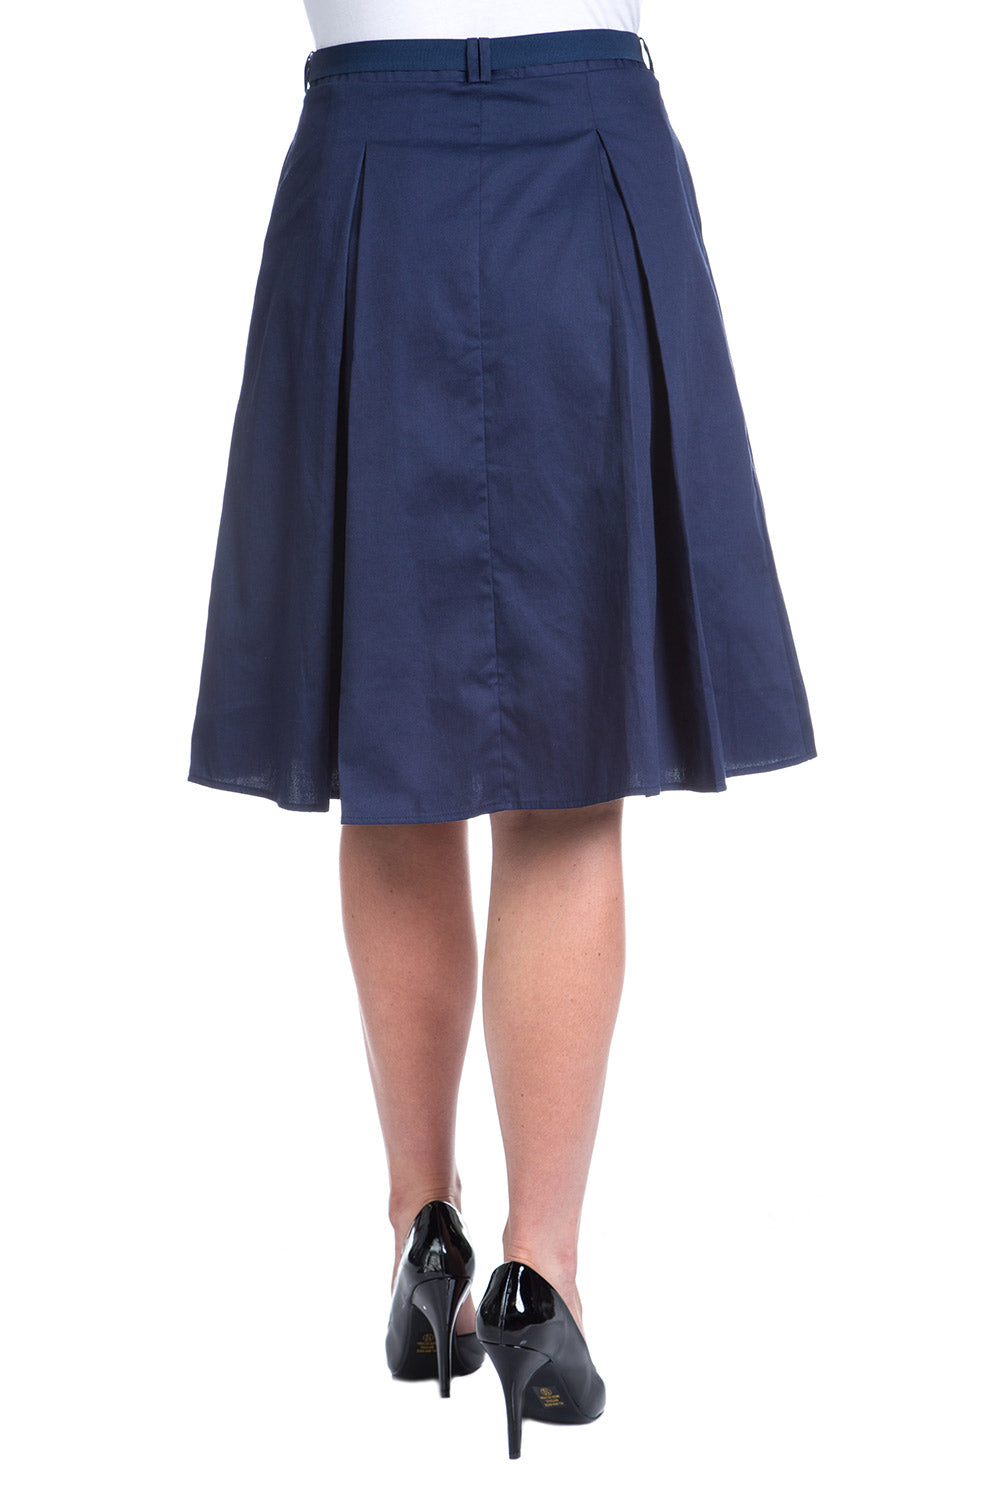 Type 4 Belt It Out Skirt